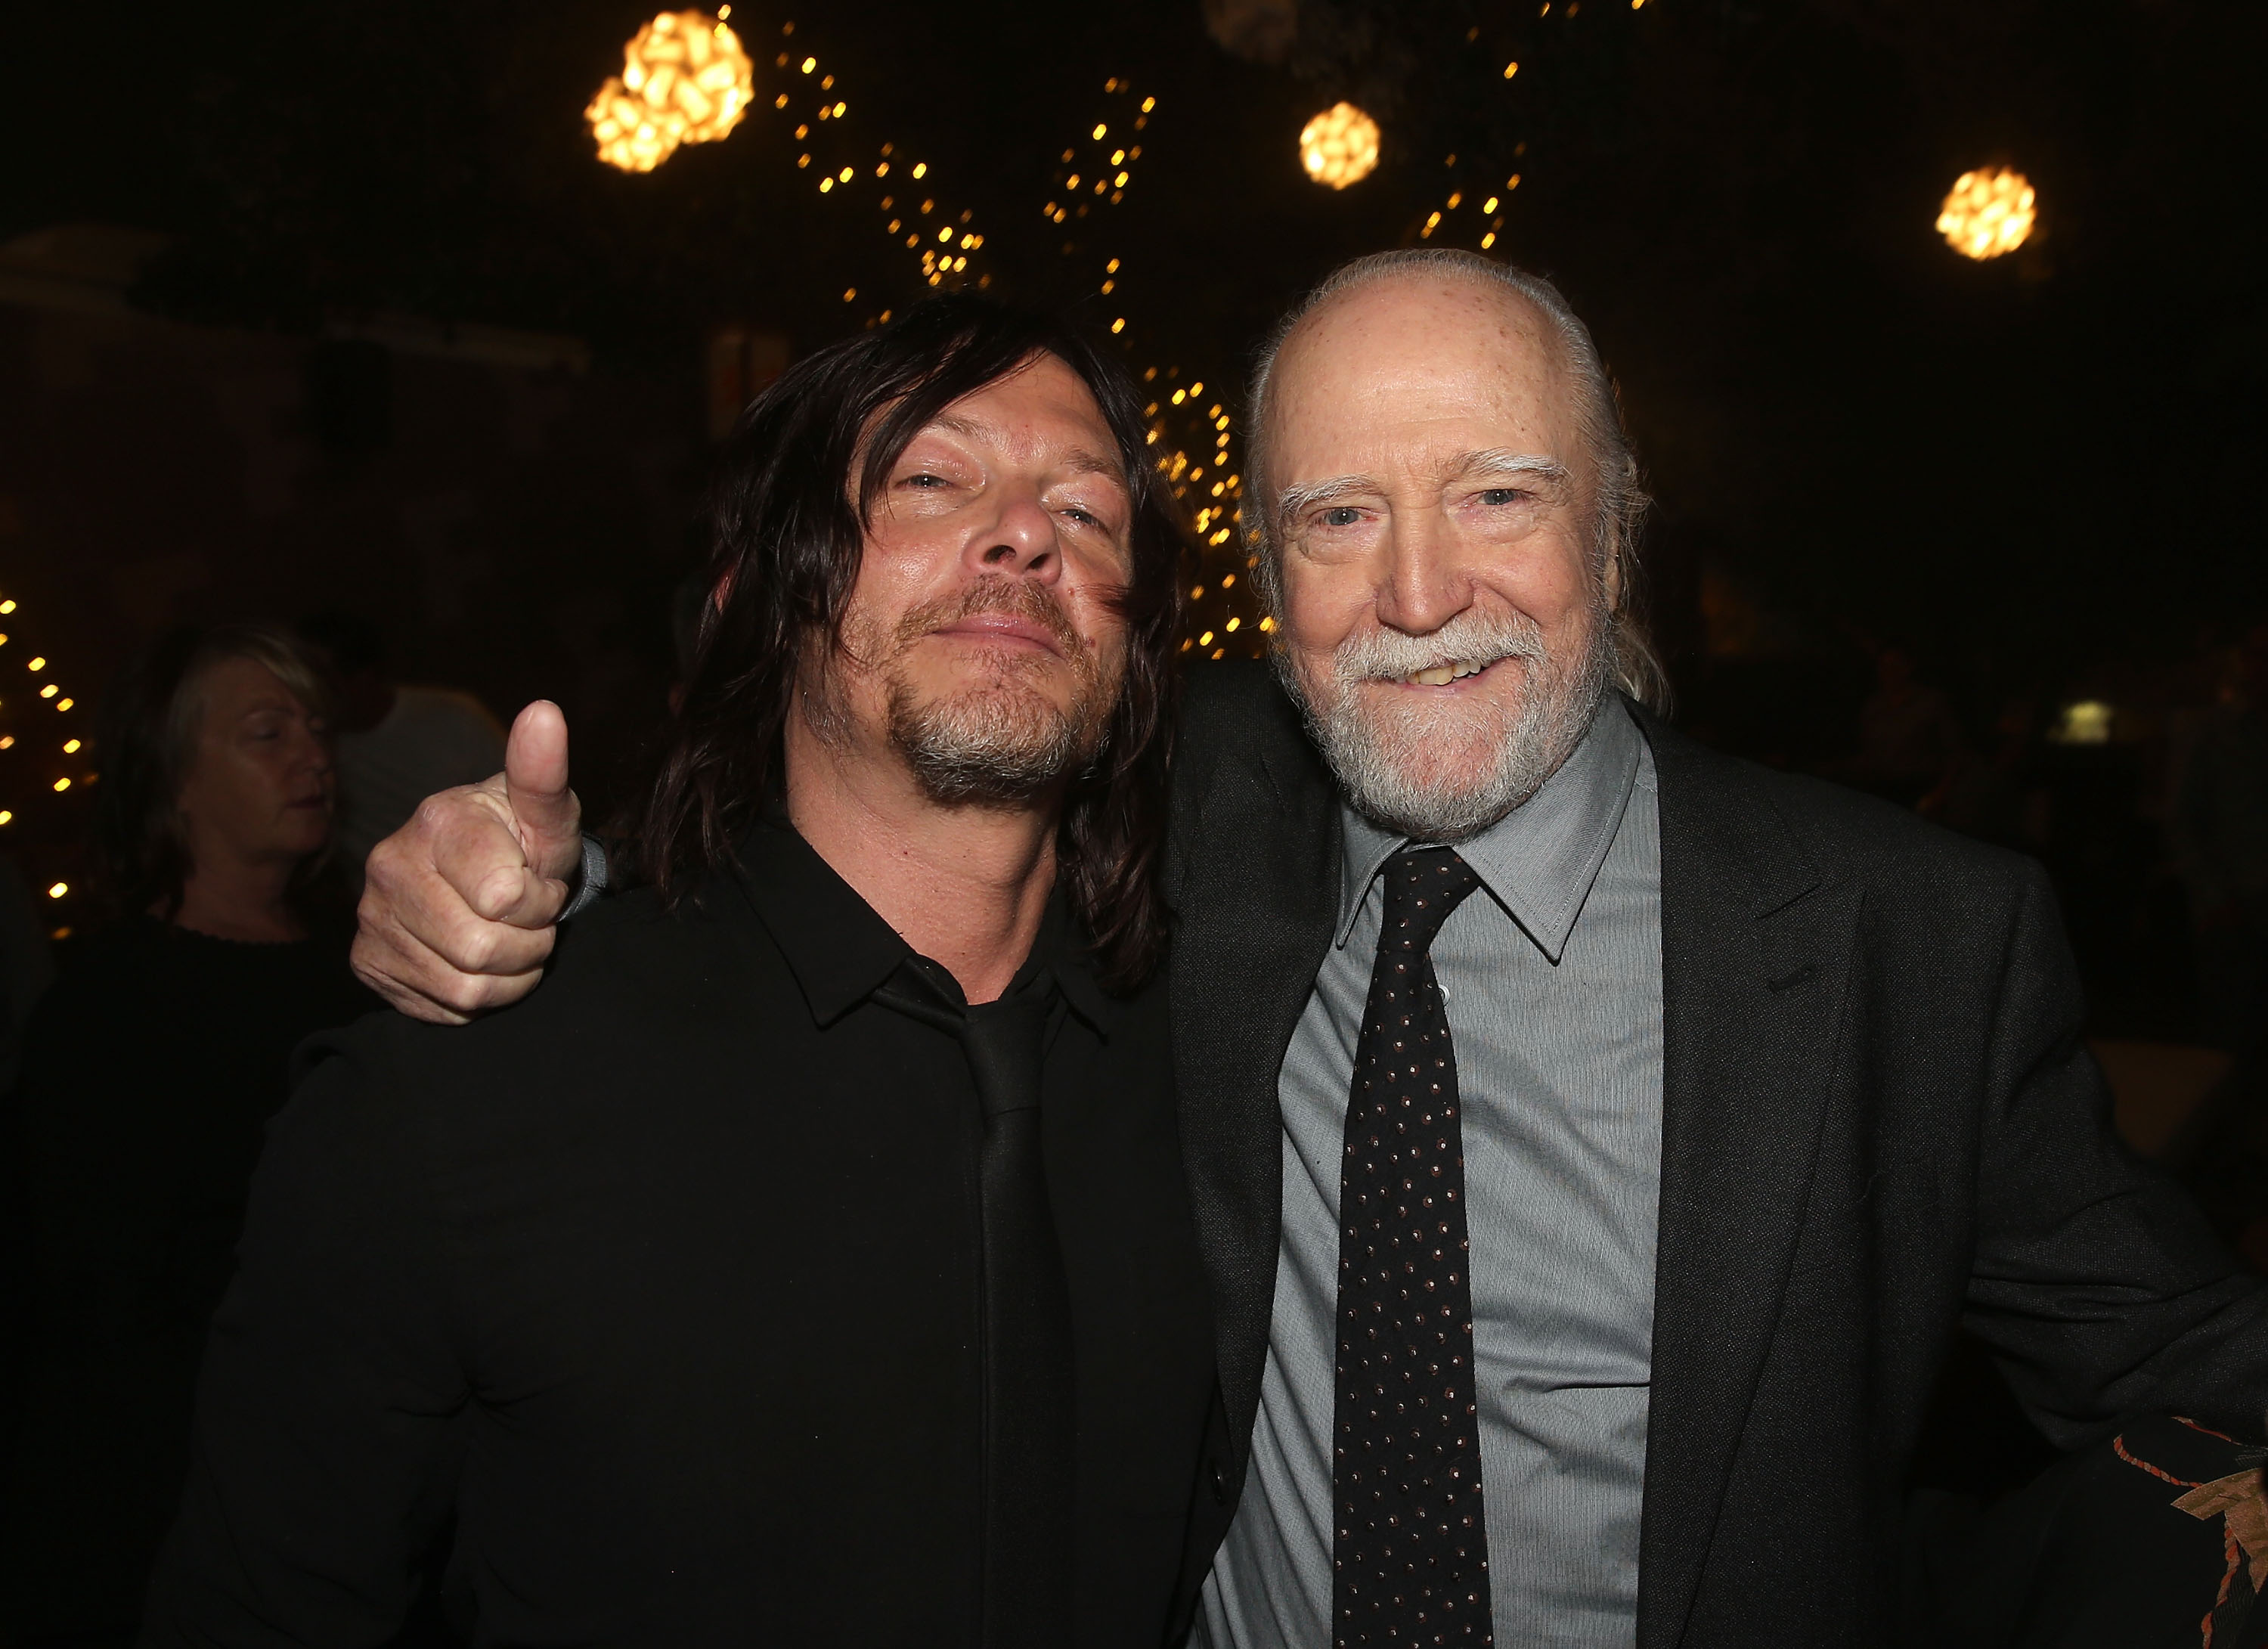 Norman Reedus (L) and Scott Wilson attend The Walking Dead 100th Episode Premiere and Party on October 22, 2017 in Los Angeles, California. (Getty Images)